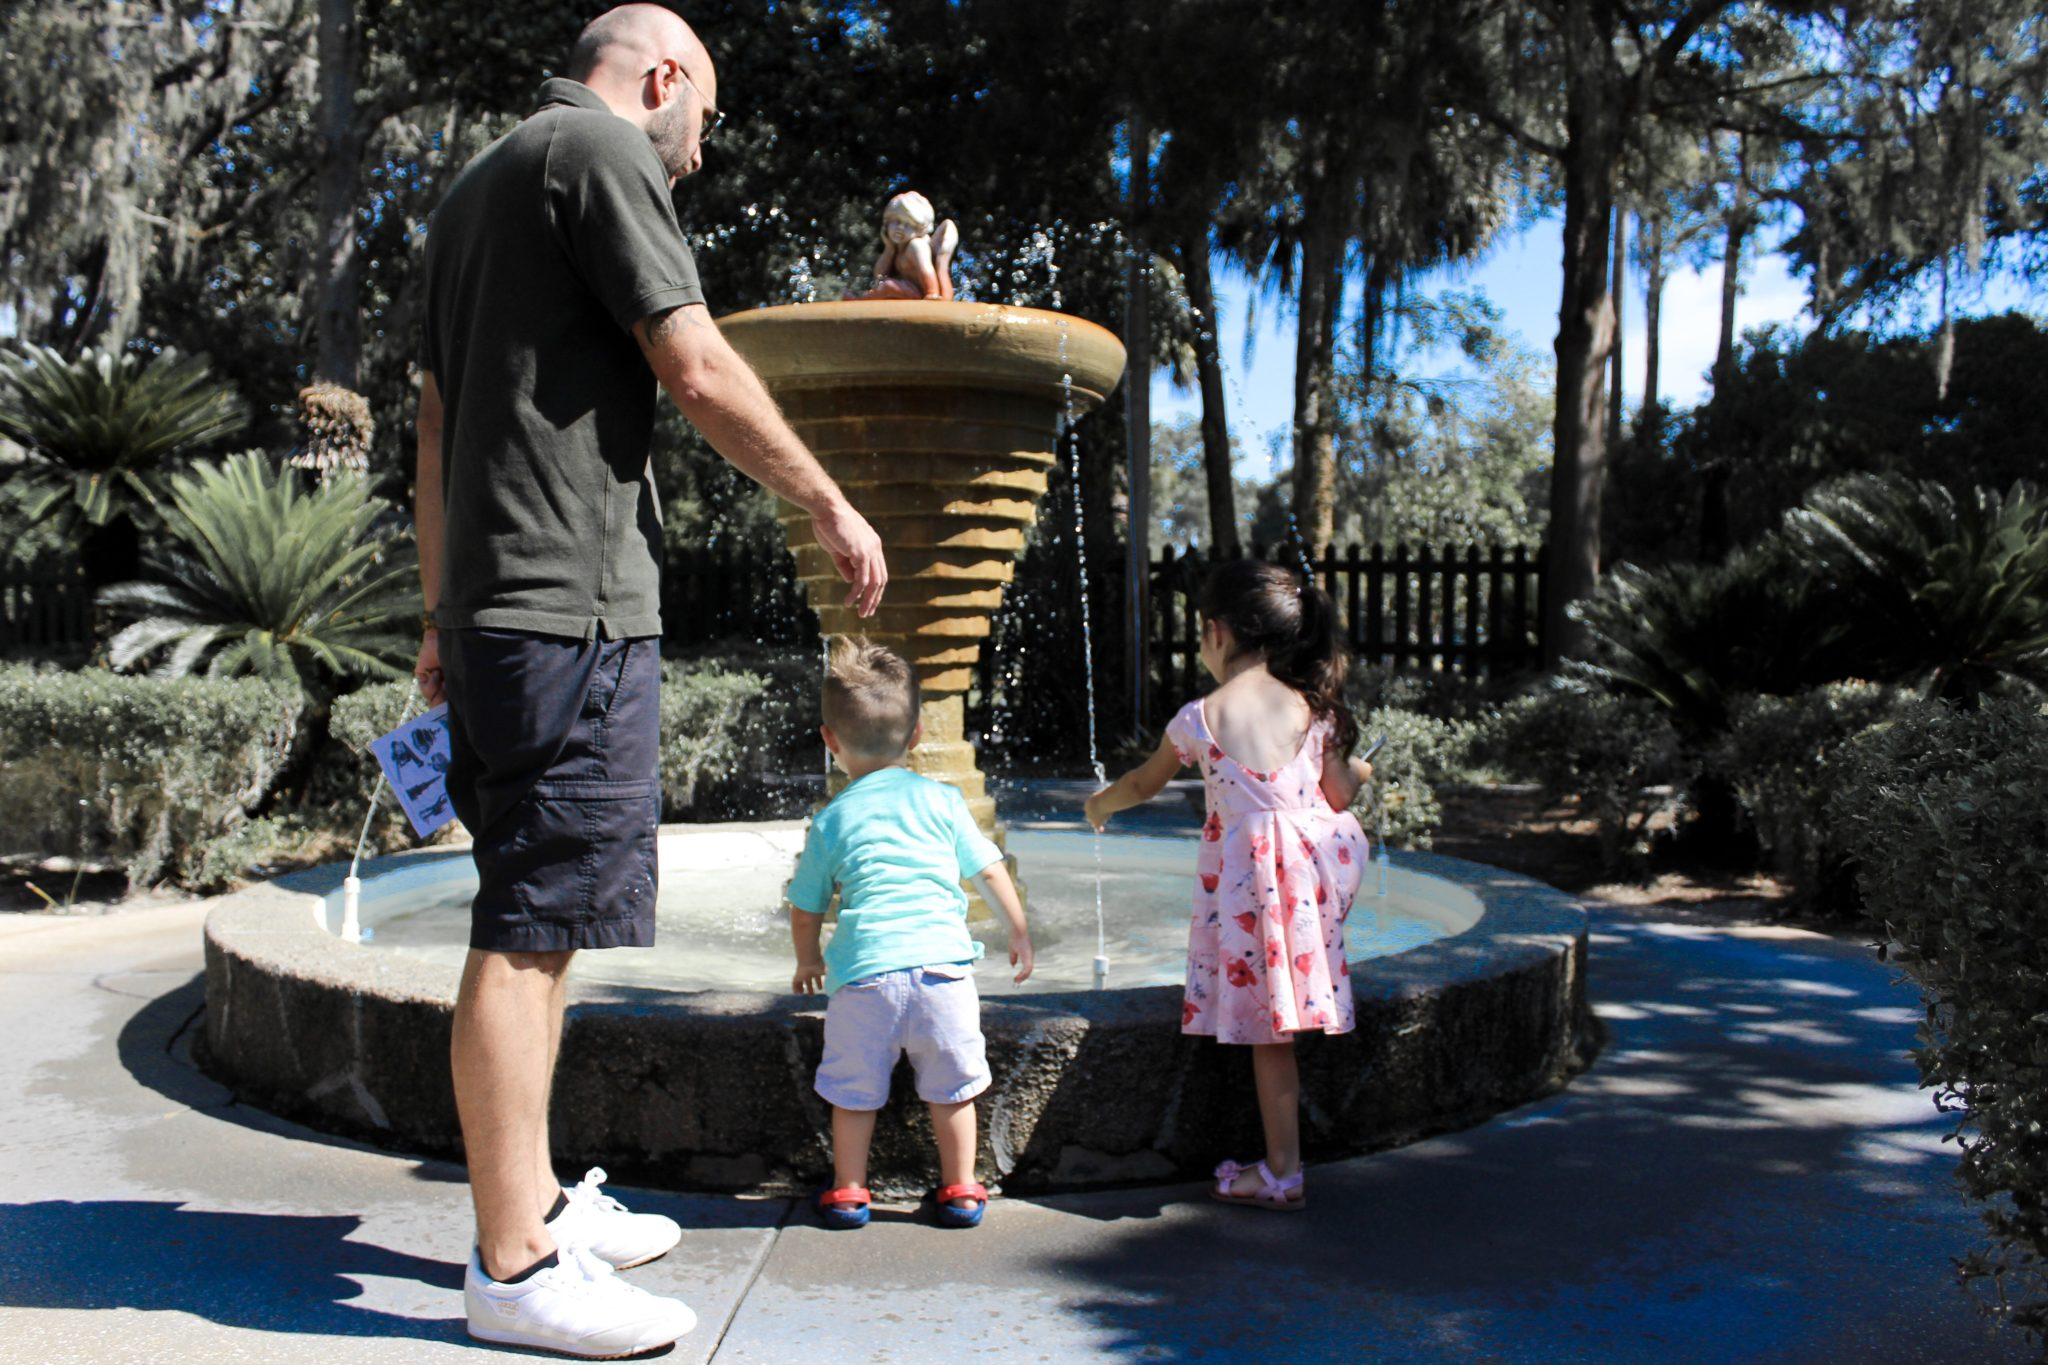 Visiting the Fountain of Youth in St. Augustine, FL - Tampa Llifestyle and Travel blogger, Crazy Life with Littles